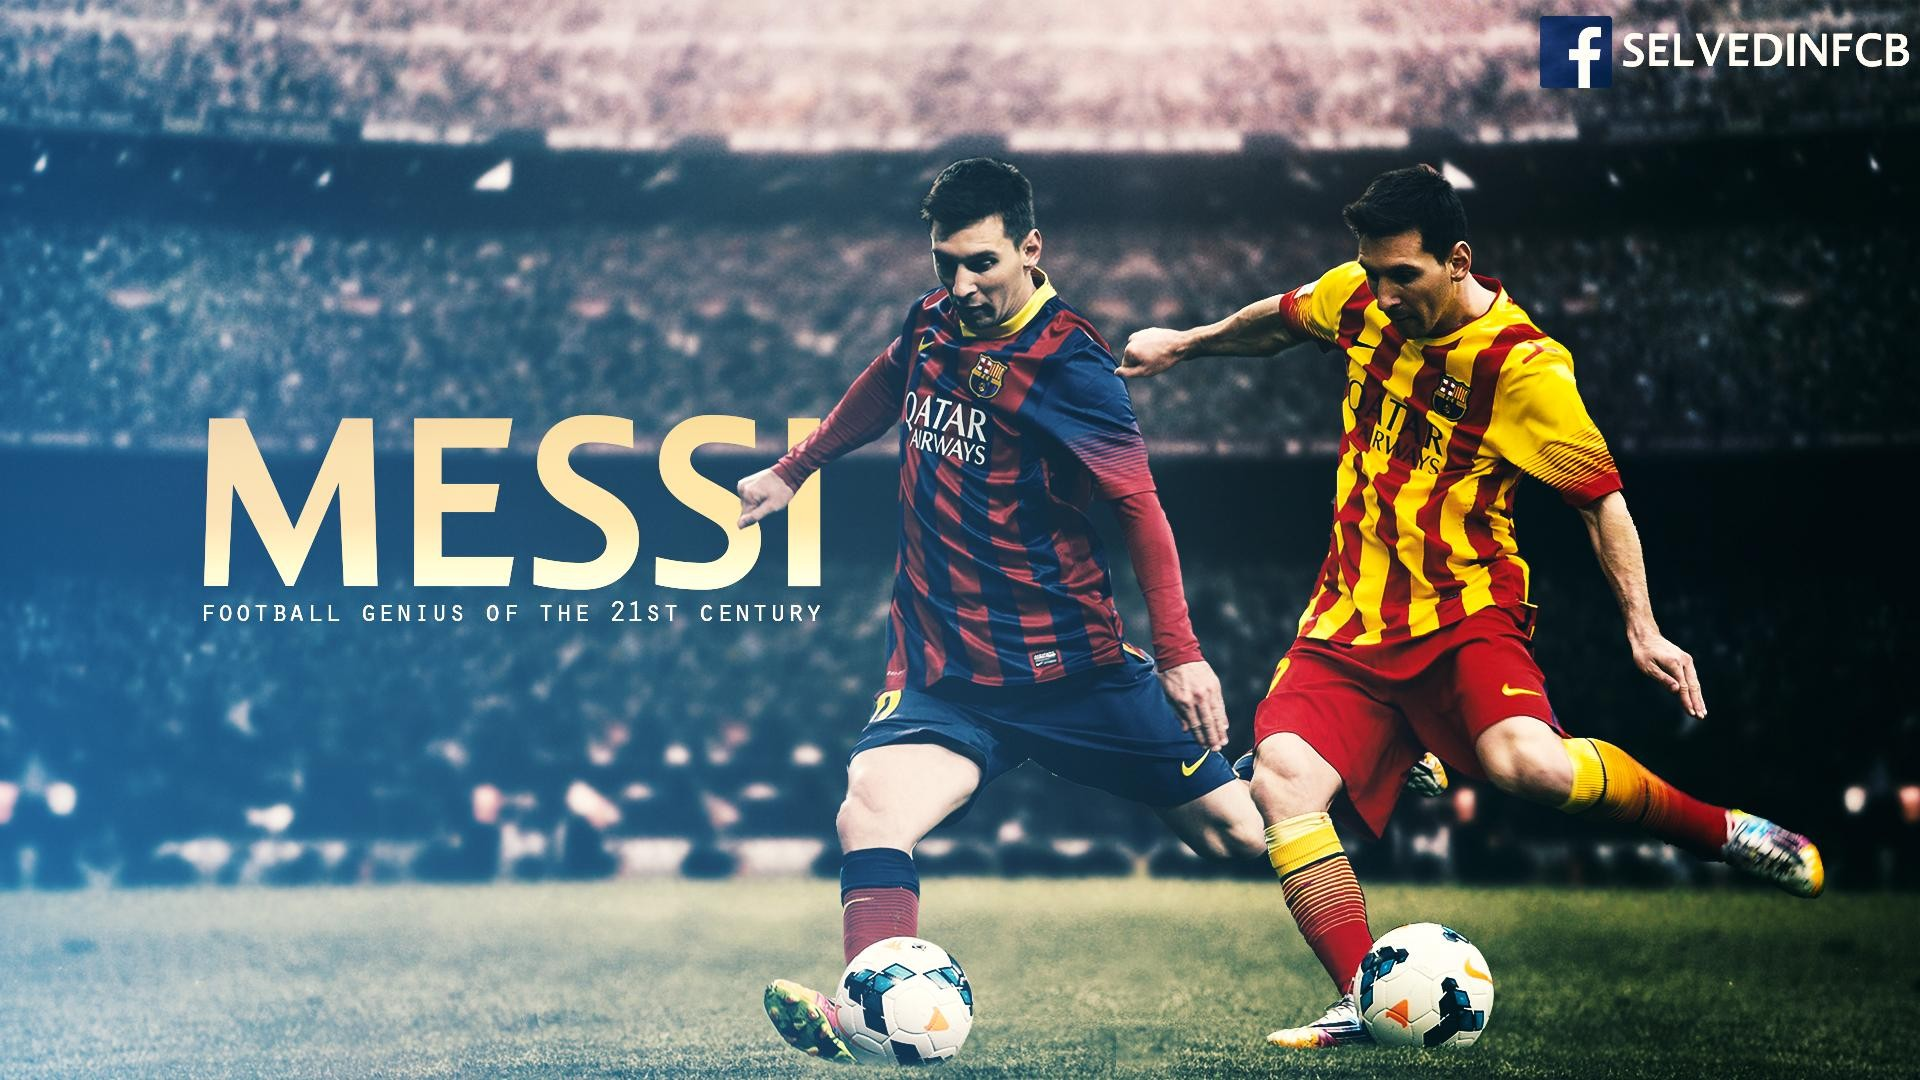 Lionel Messi Wallpaper For